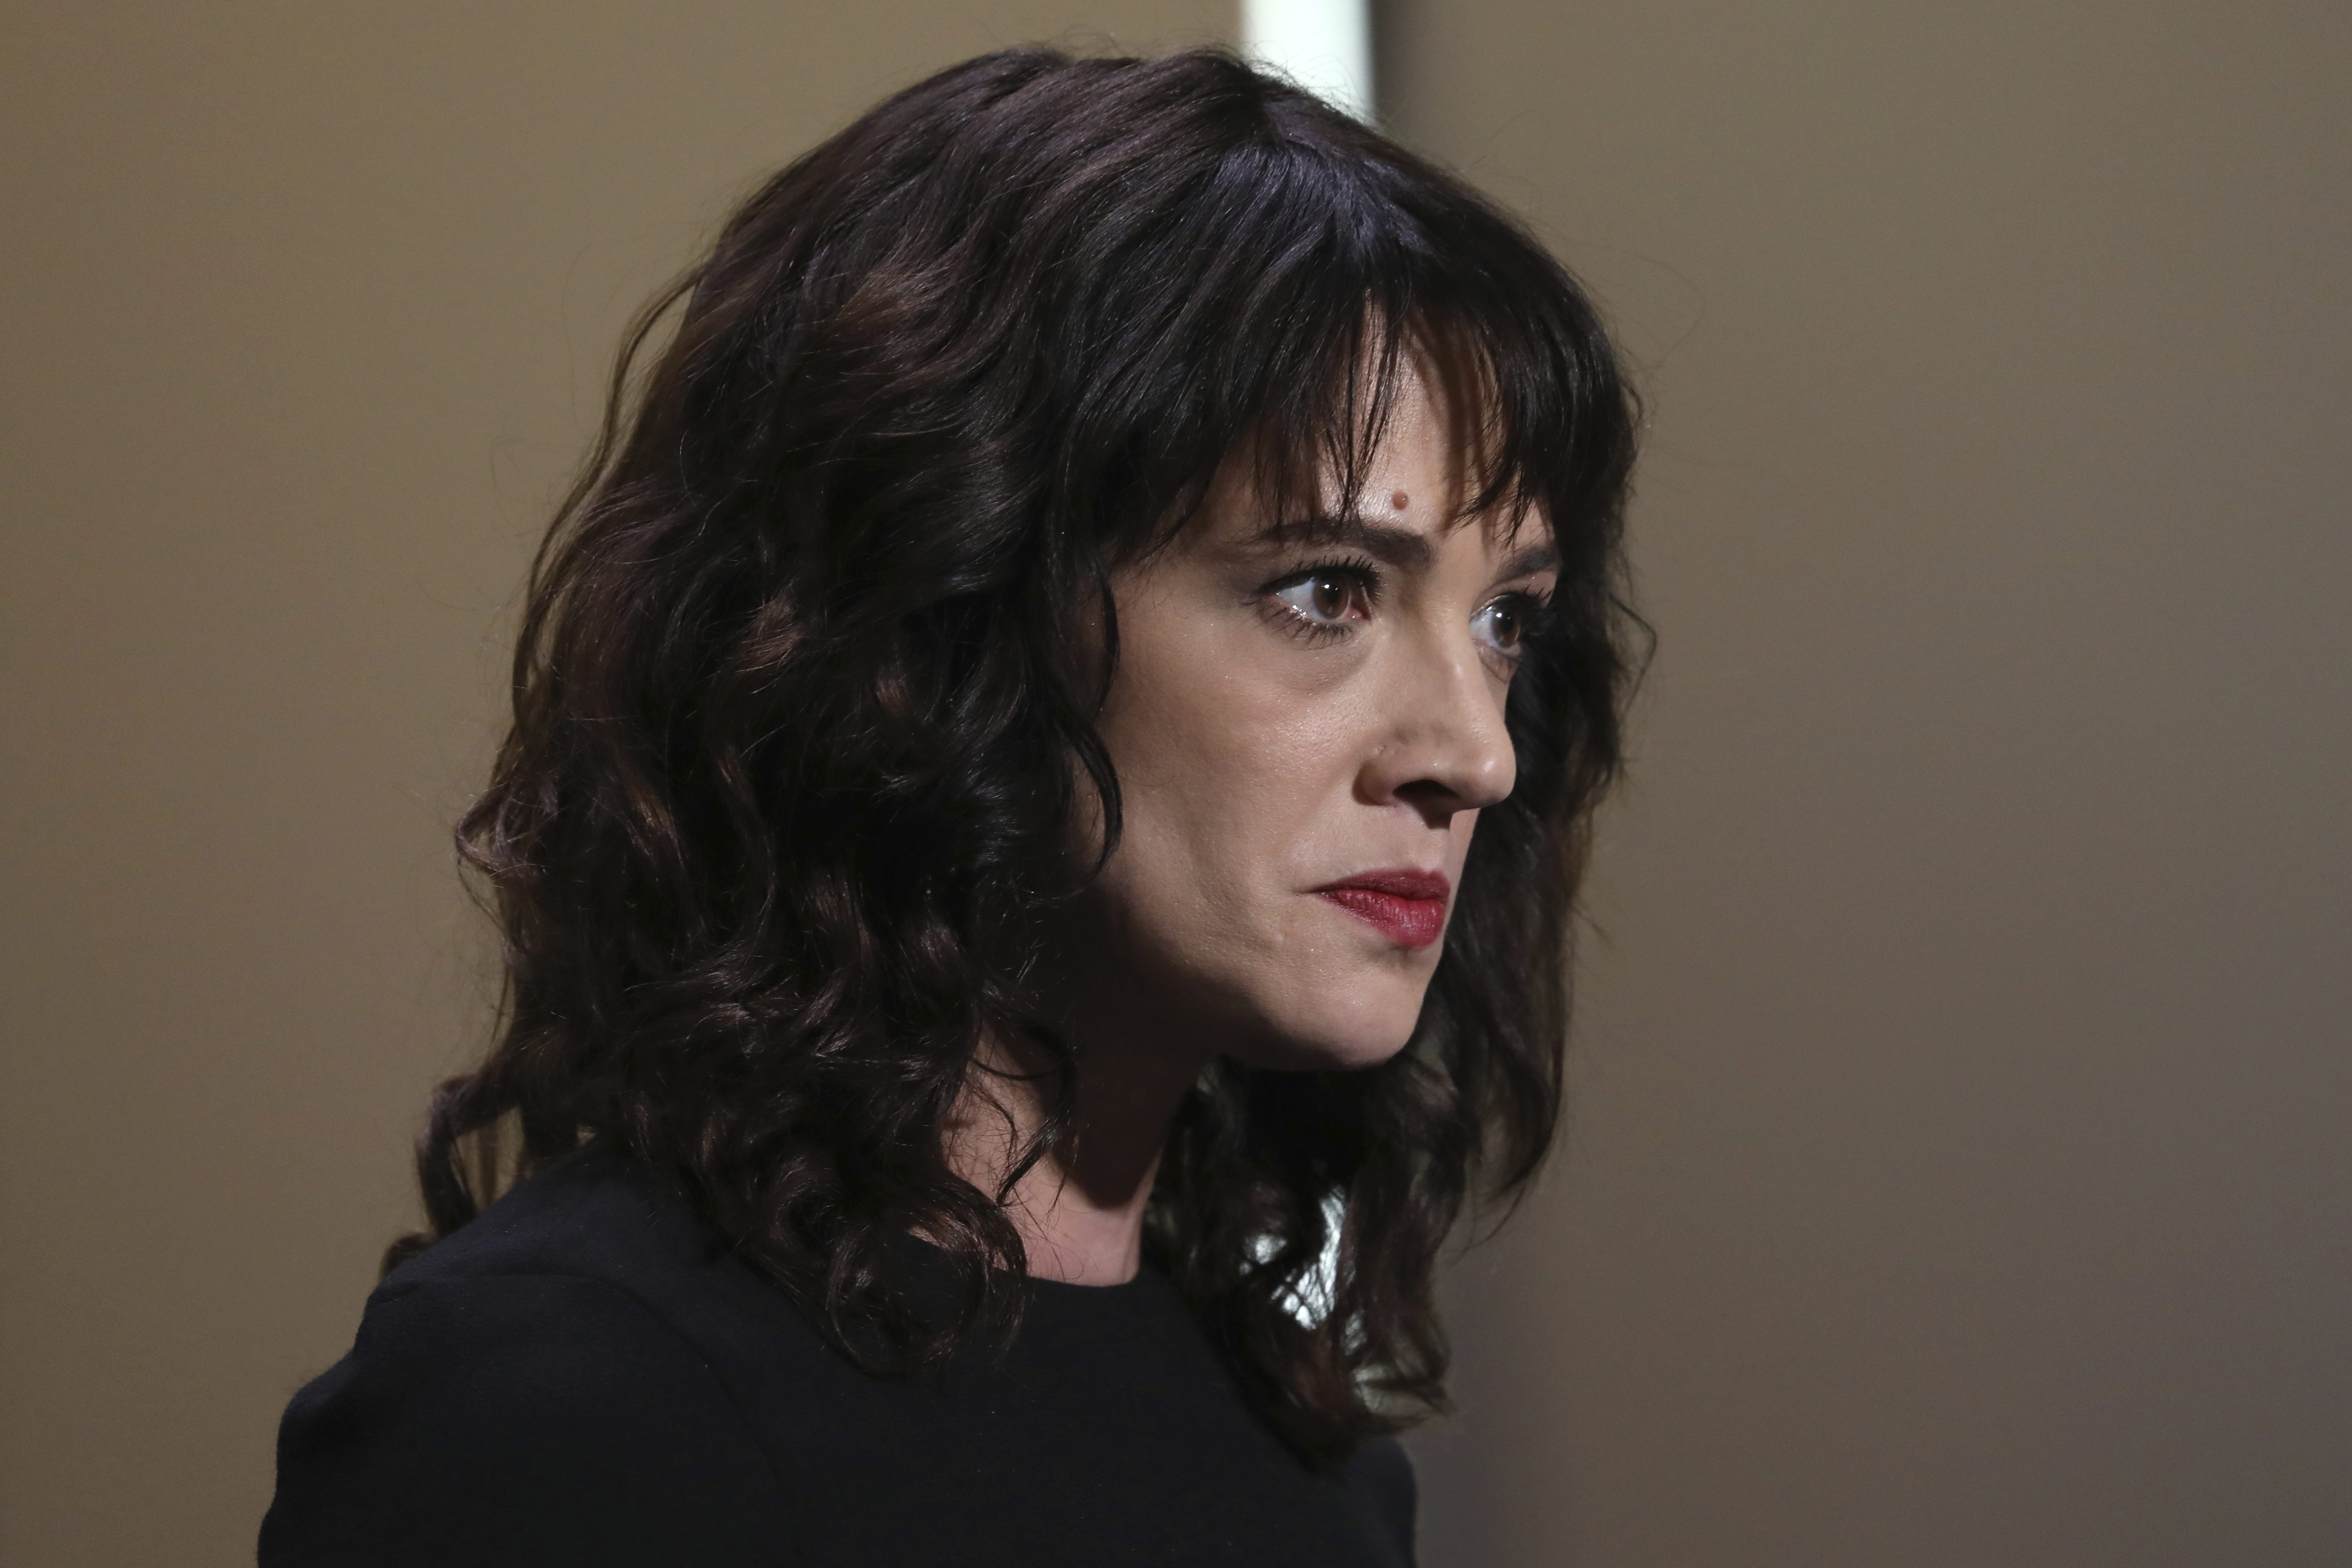 Asia Argento reportedly paid off a sexual assault accuser